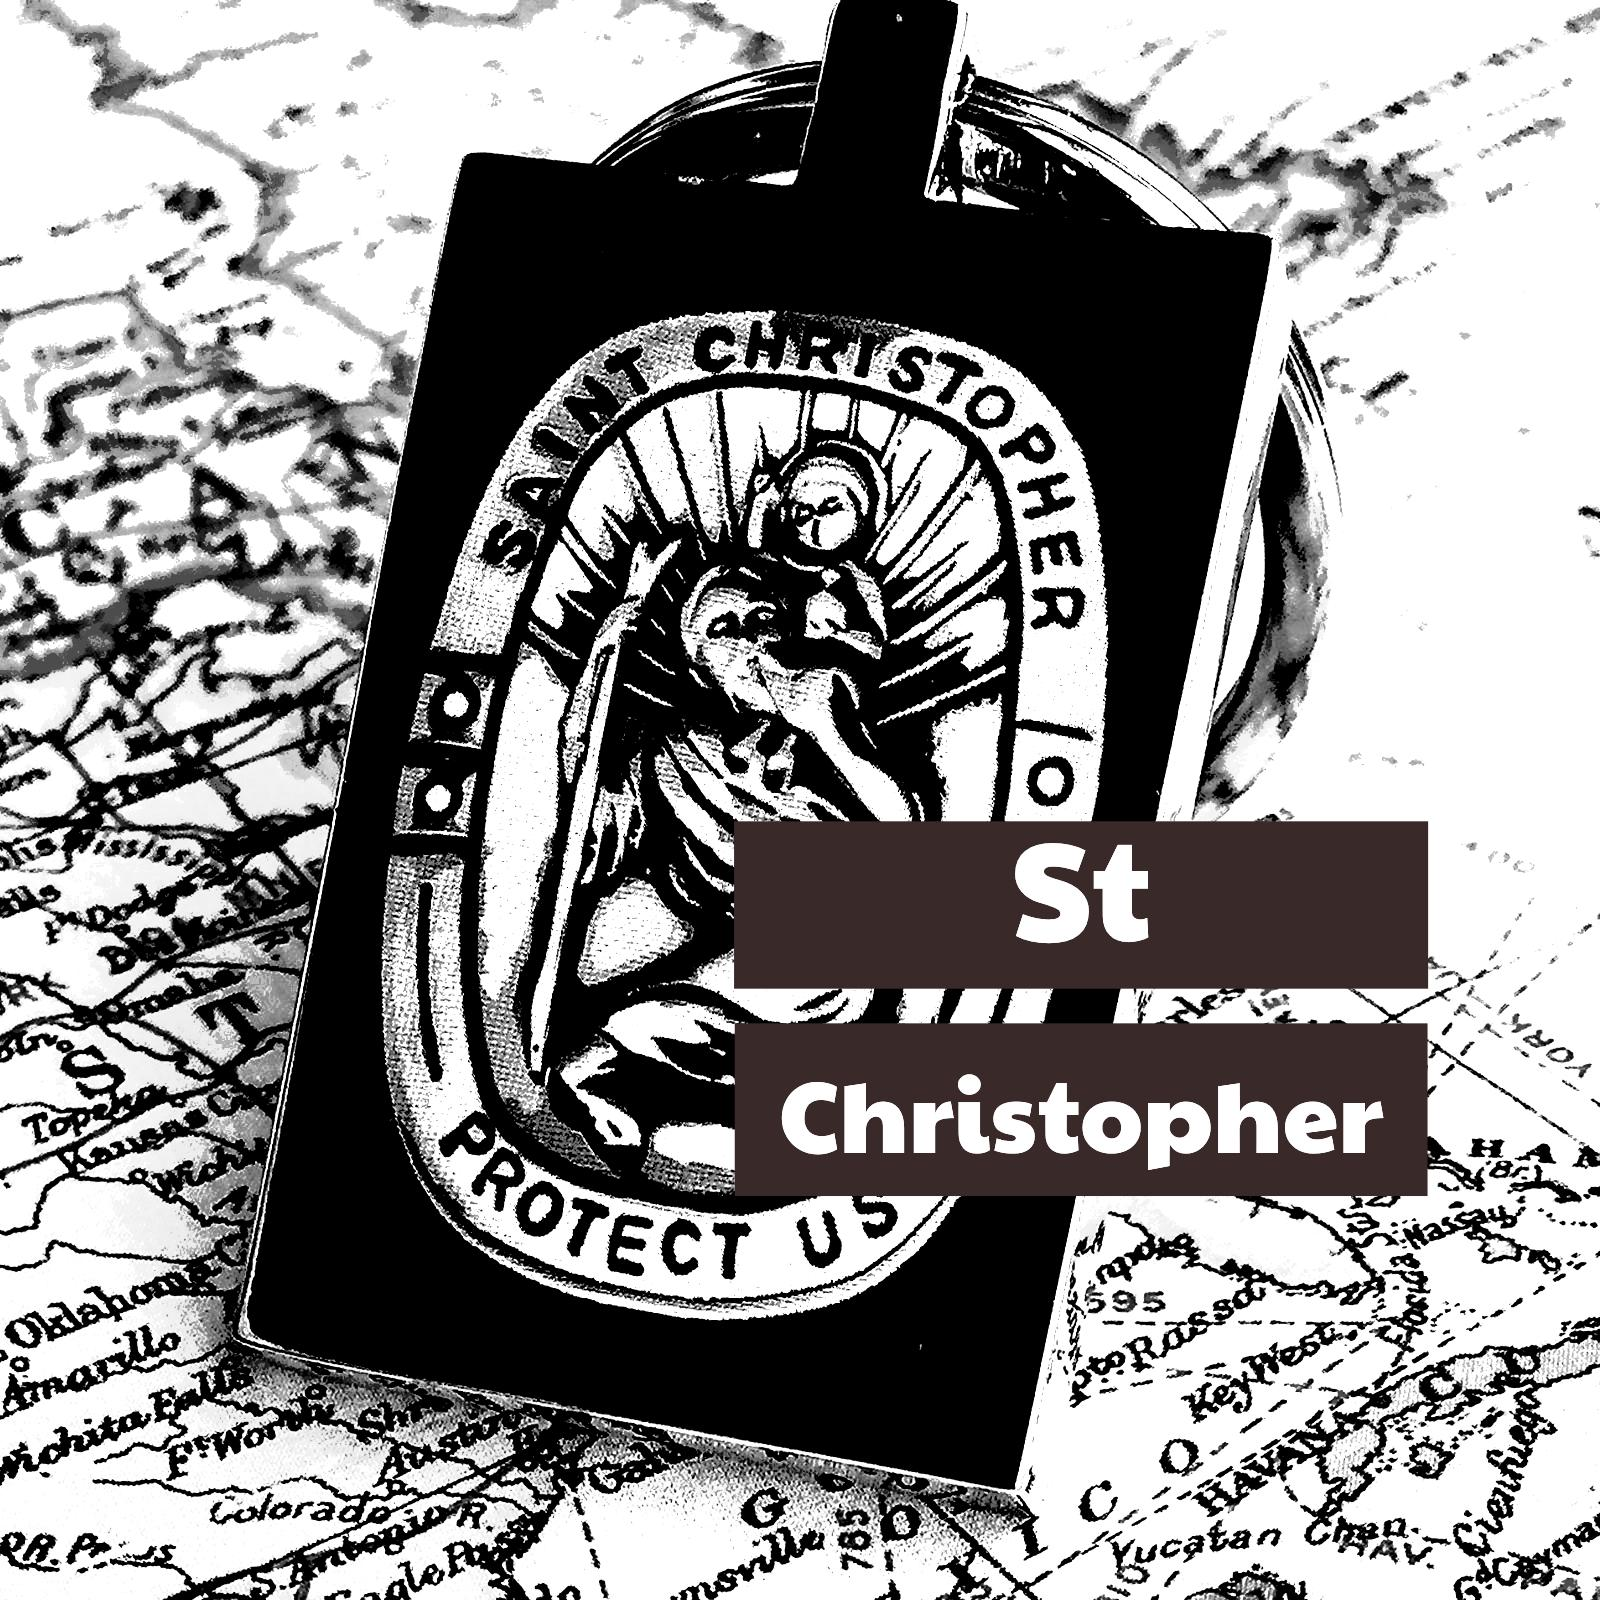 St Christopers